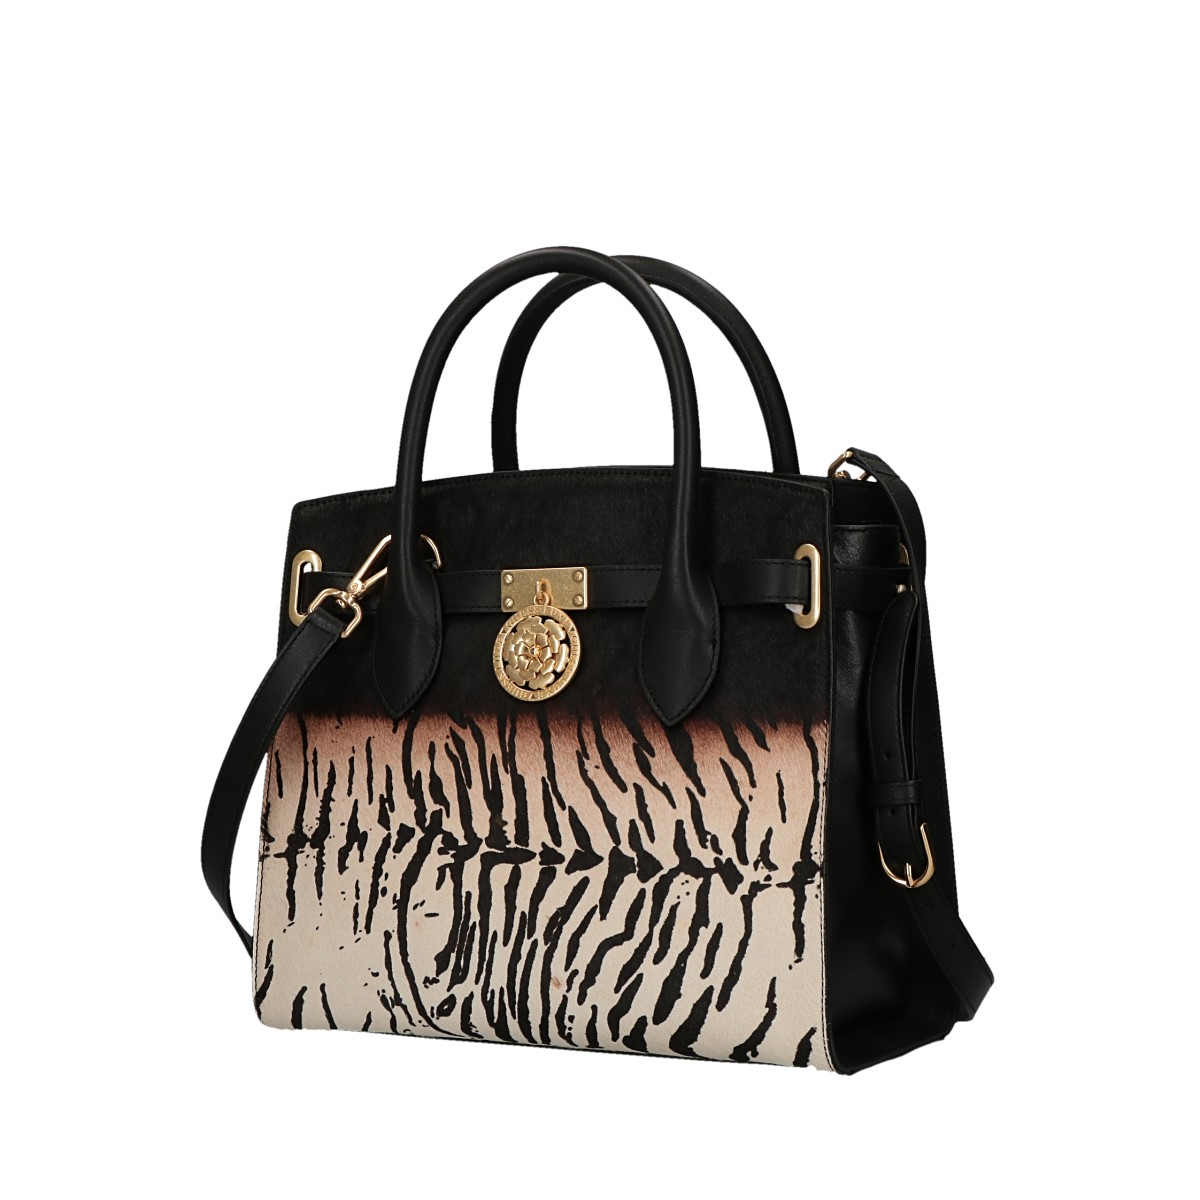 Guess Borsa a tracolla S pelle Luxe IVM